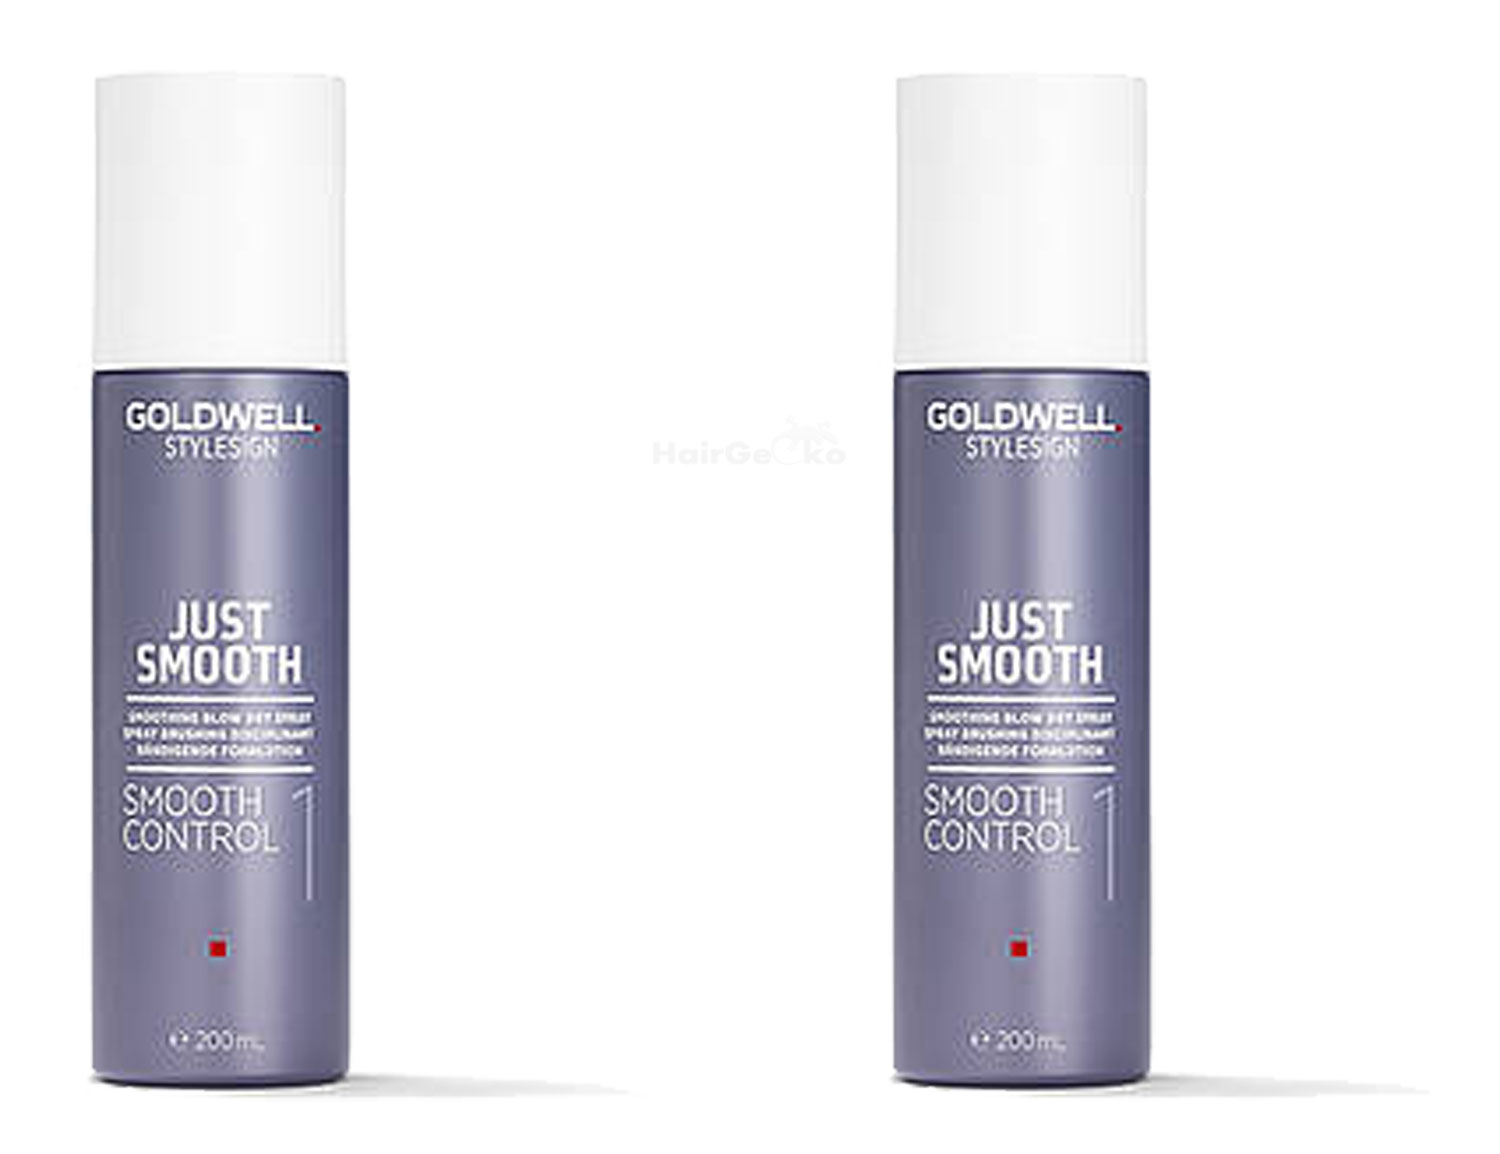 Goldwell StyleSign Just Smooth Aktion - Smooth Control 2x200ml = 400ml